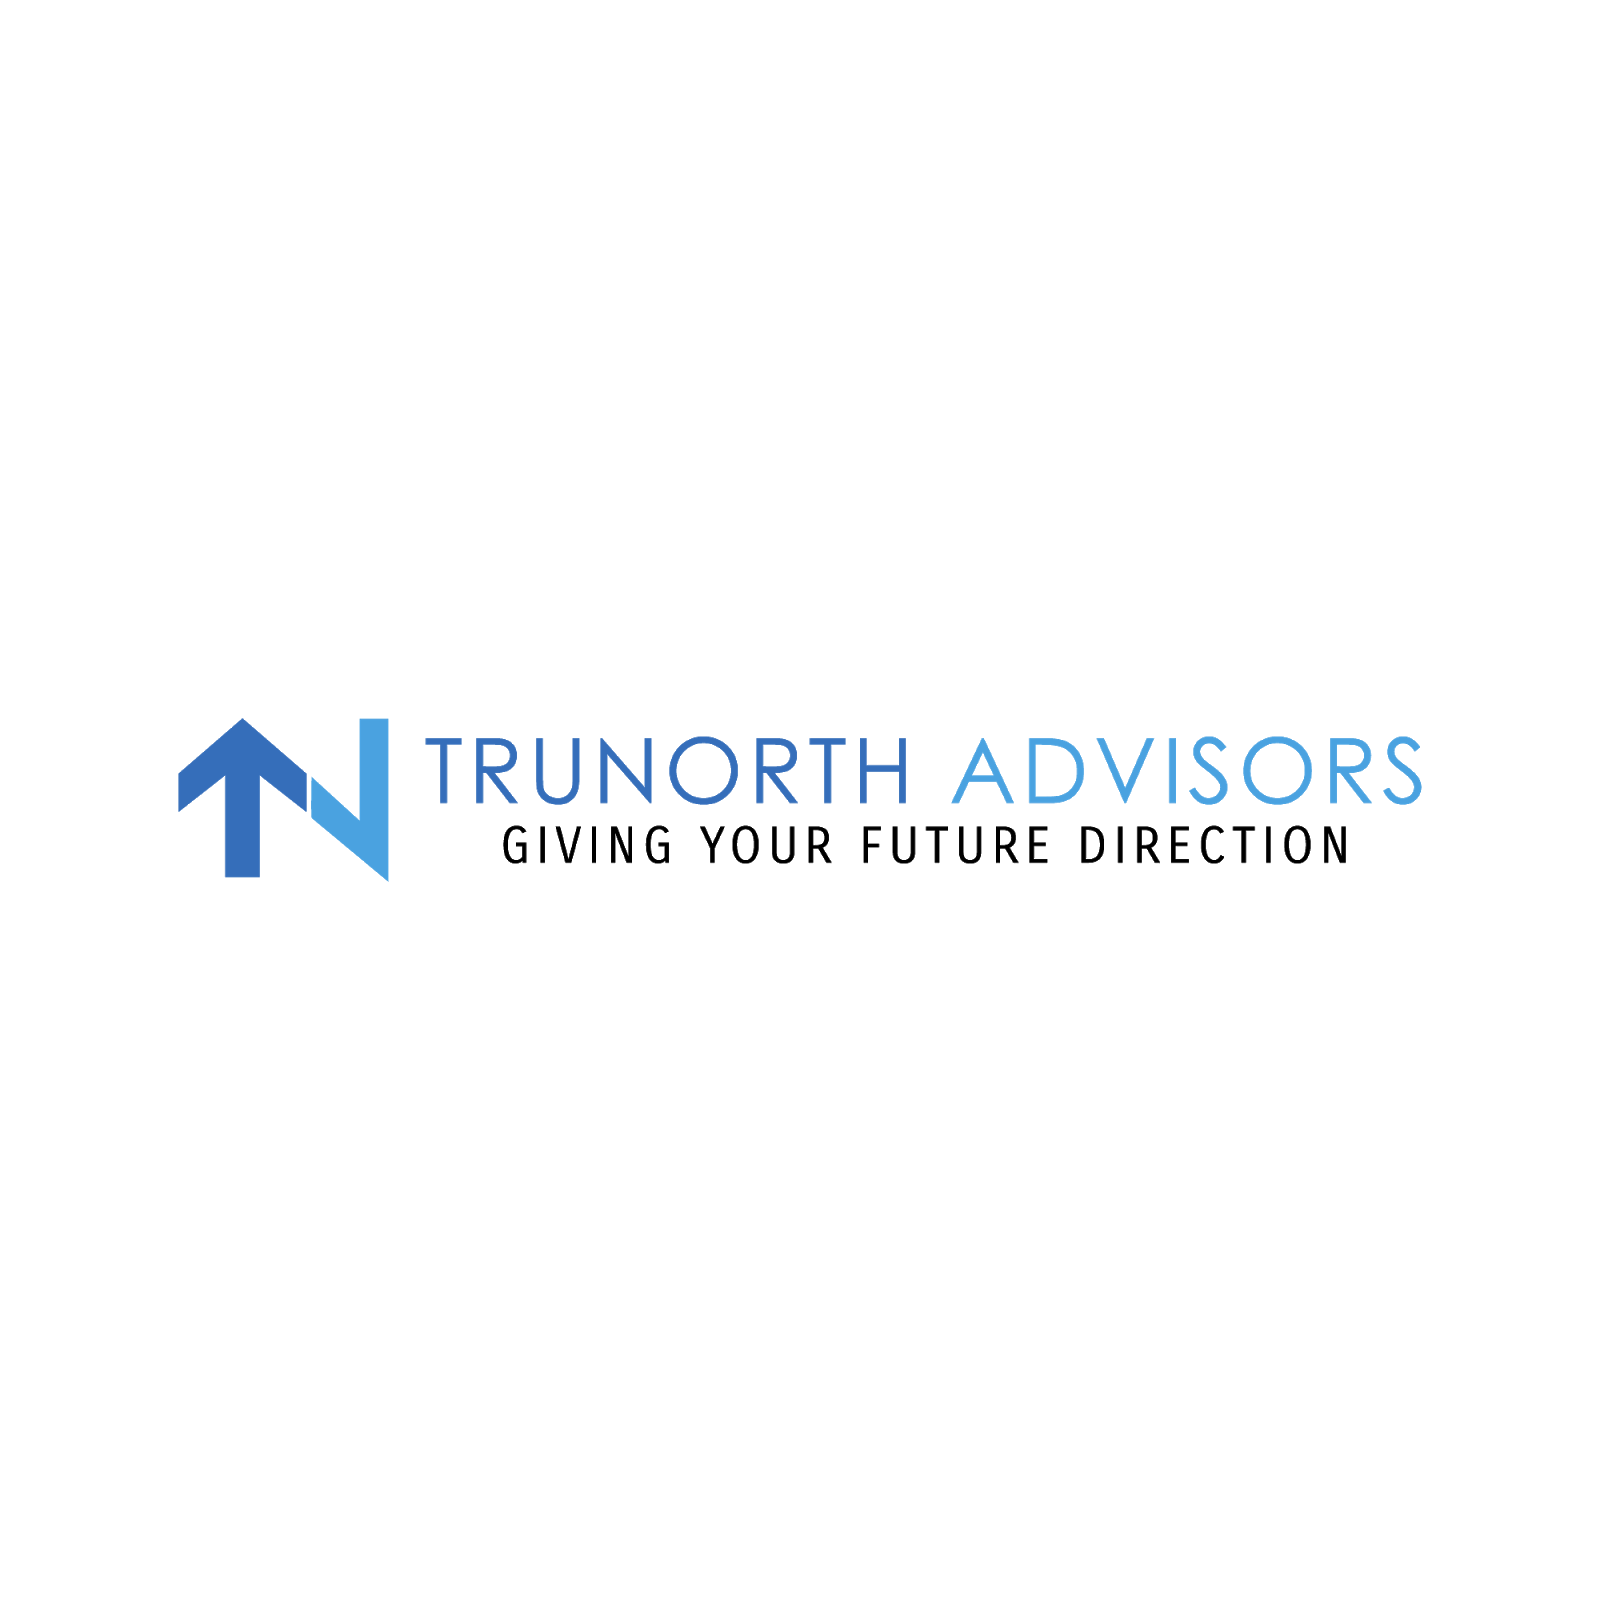 TruNorth Advisors, LLC